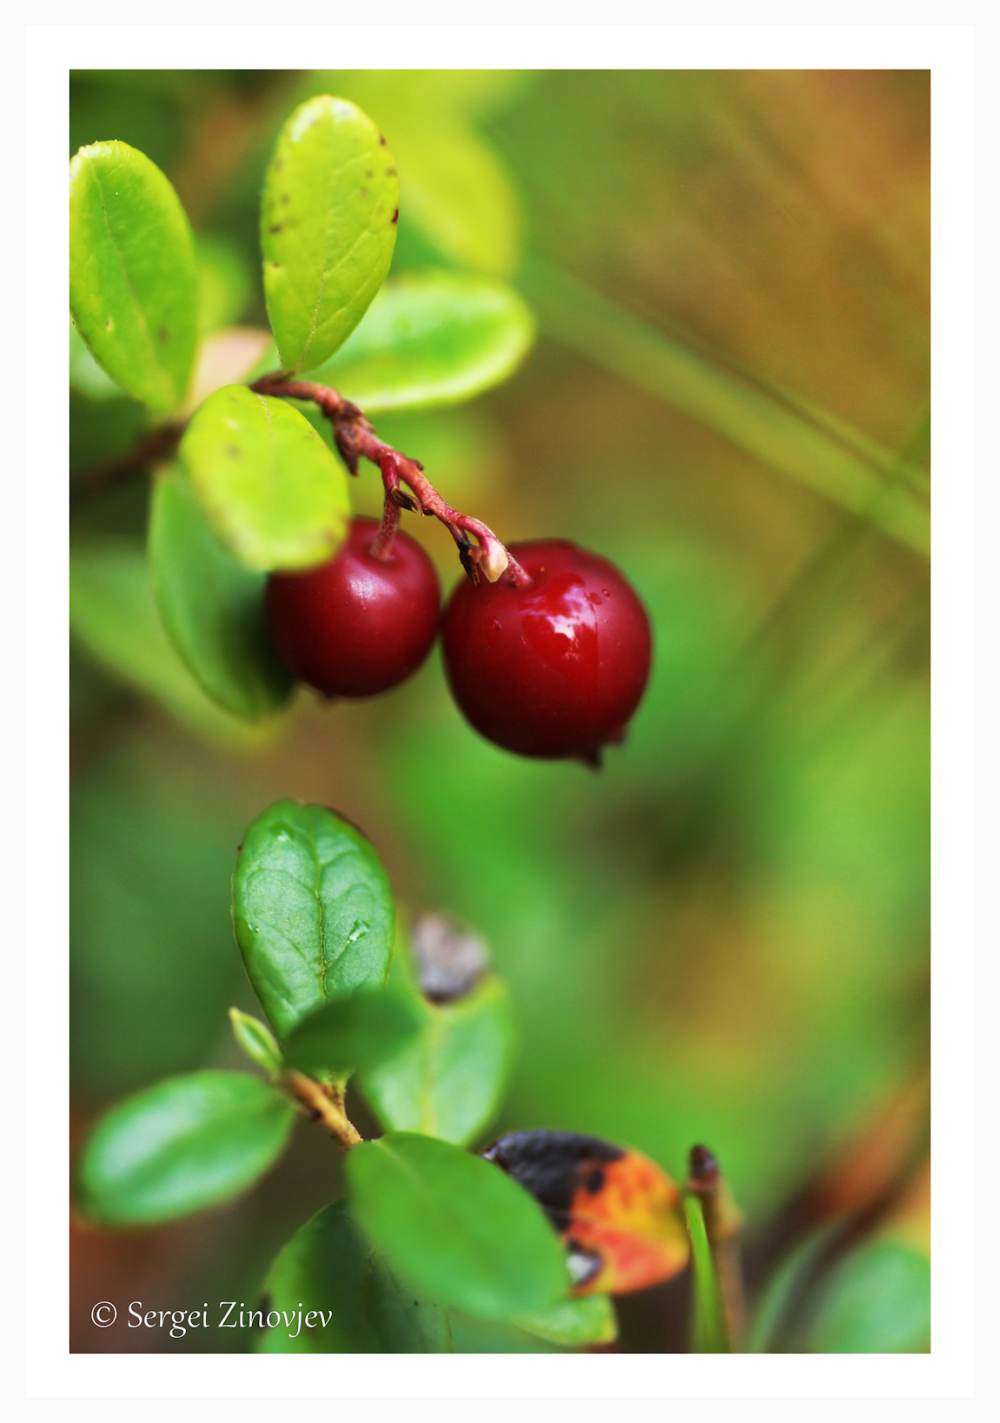 close-up of Lingonberry